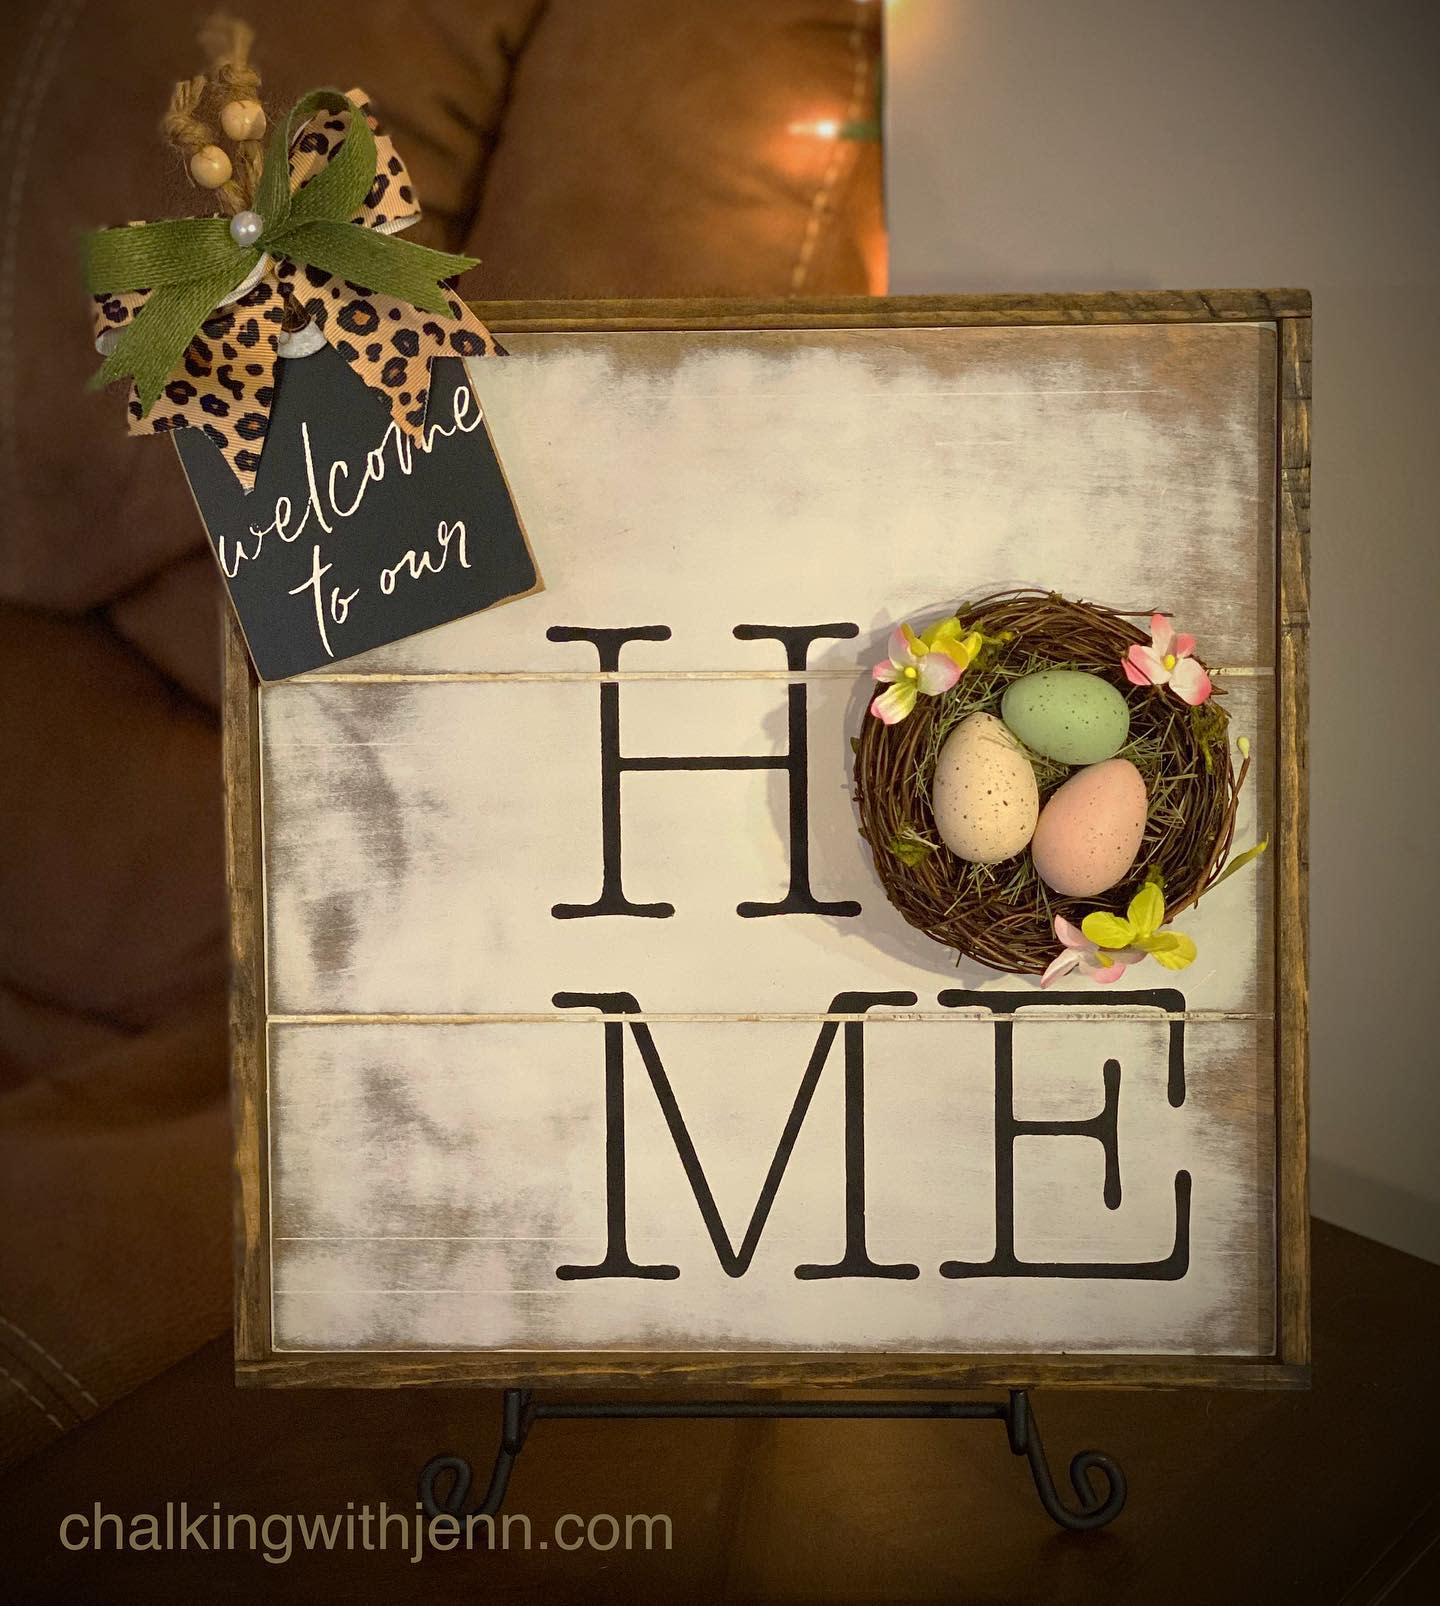 House Welcome Sign Ideas -chalkingwithjenn